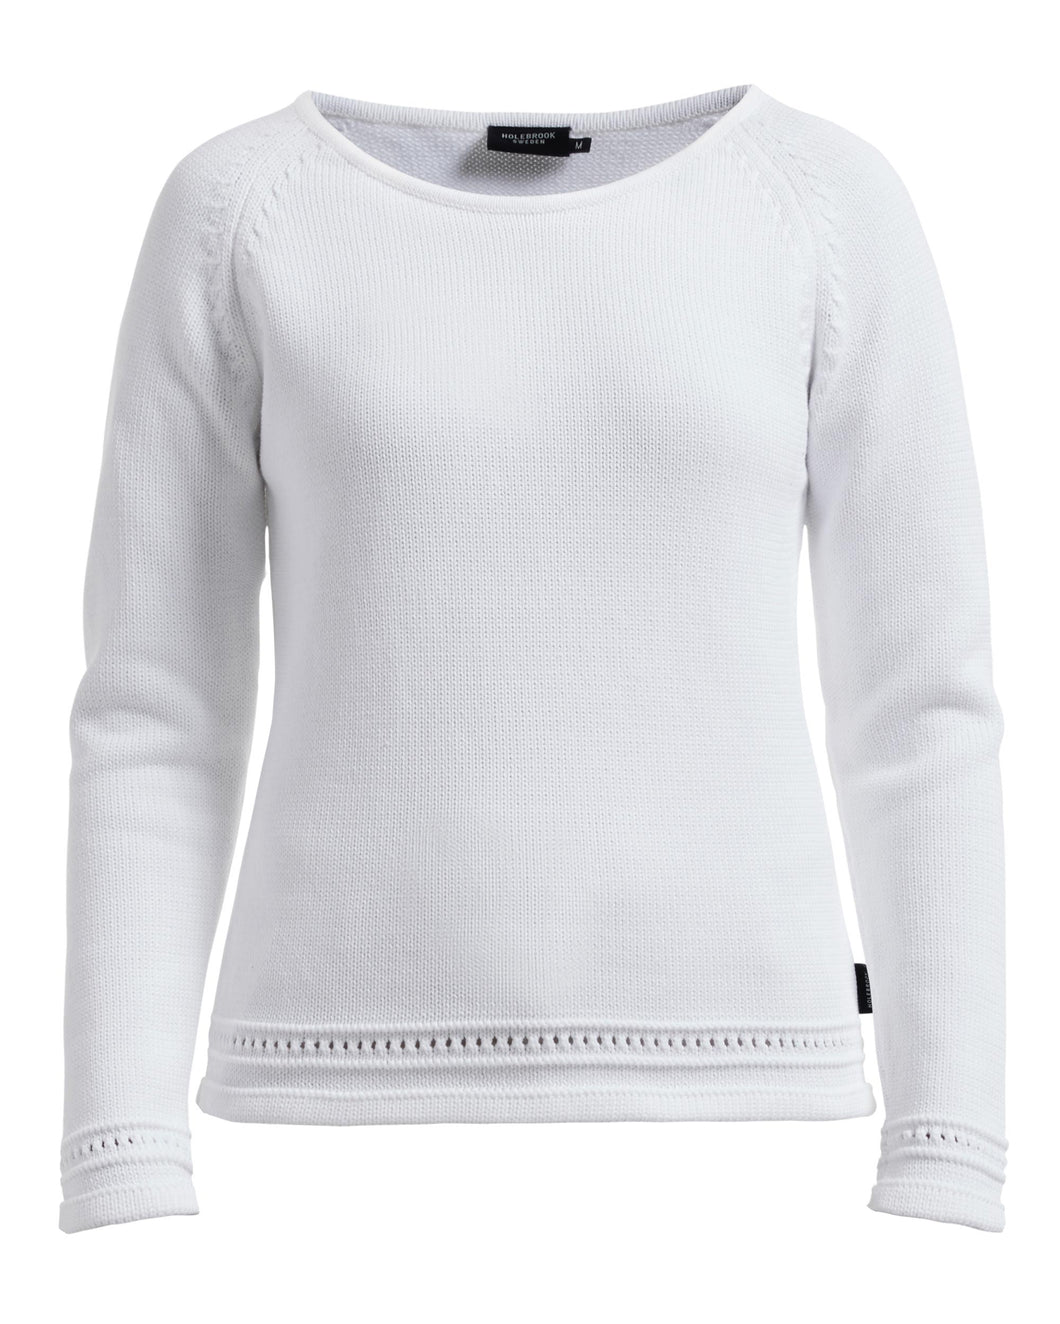 Holebrook Sweden Berta Crew Neck Jumper